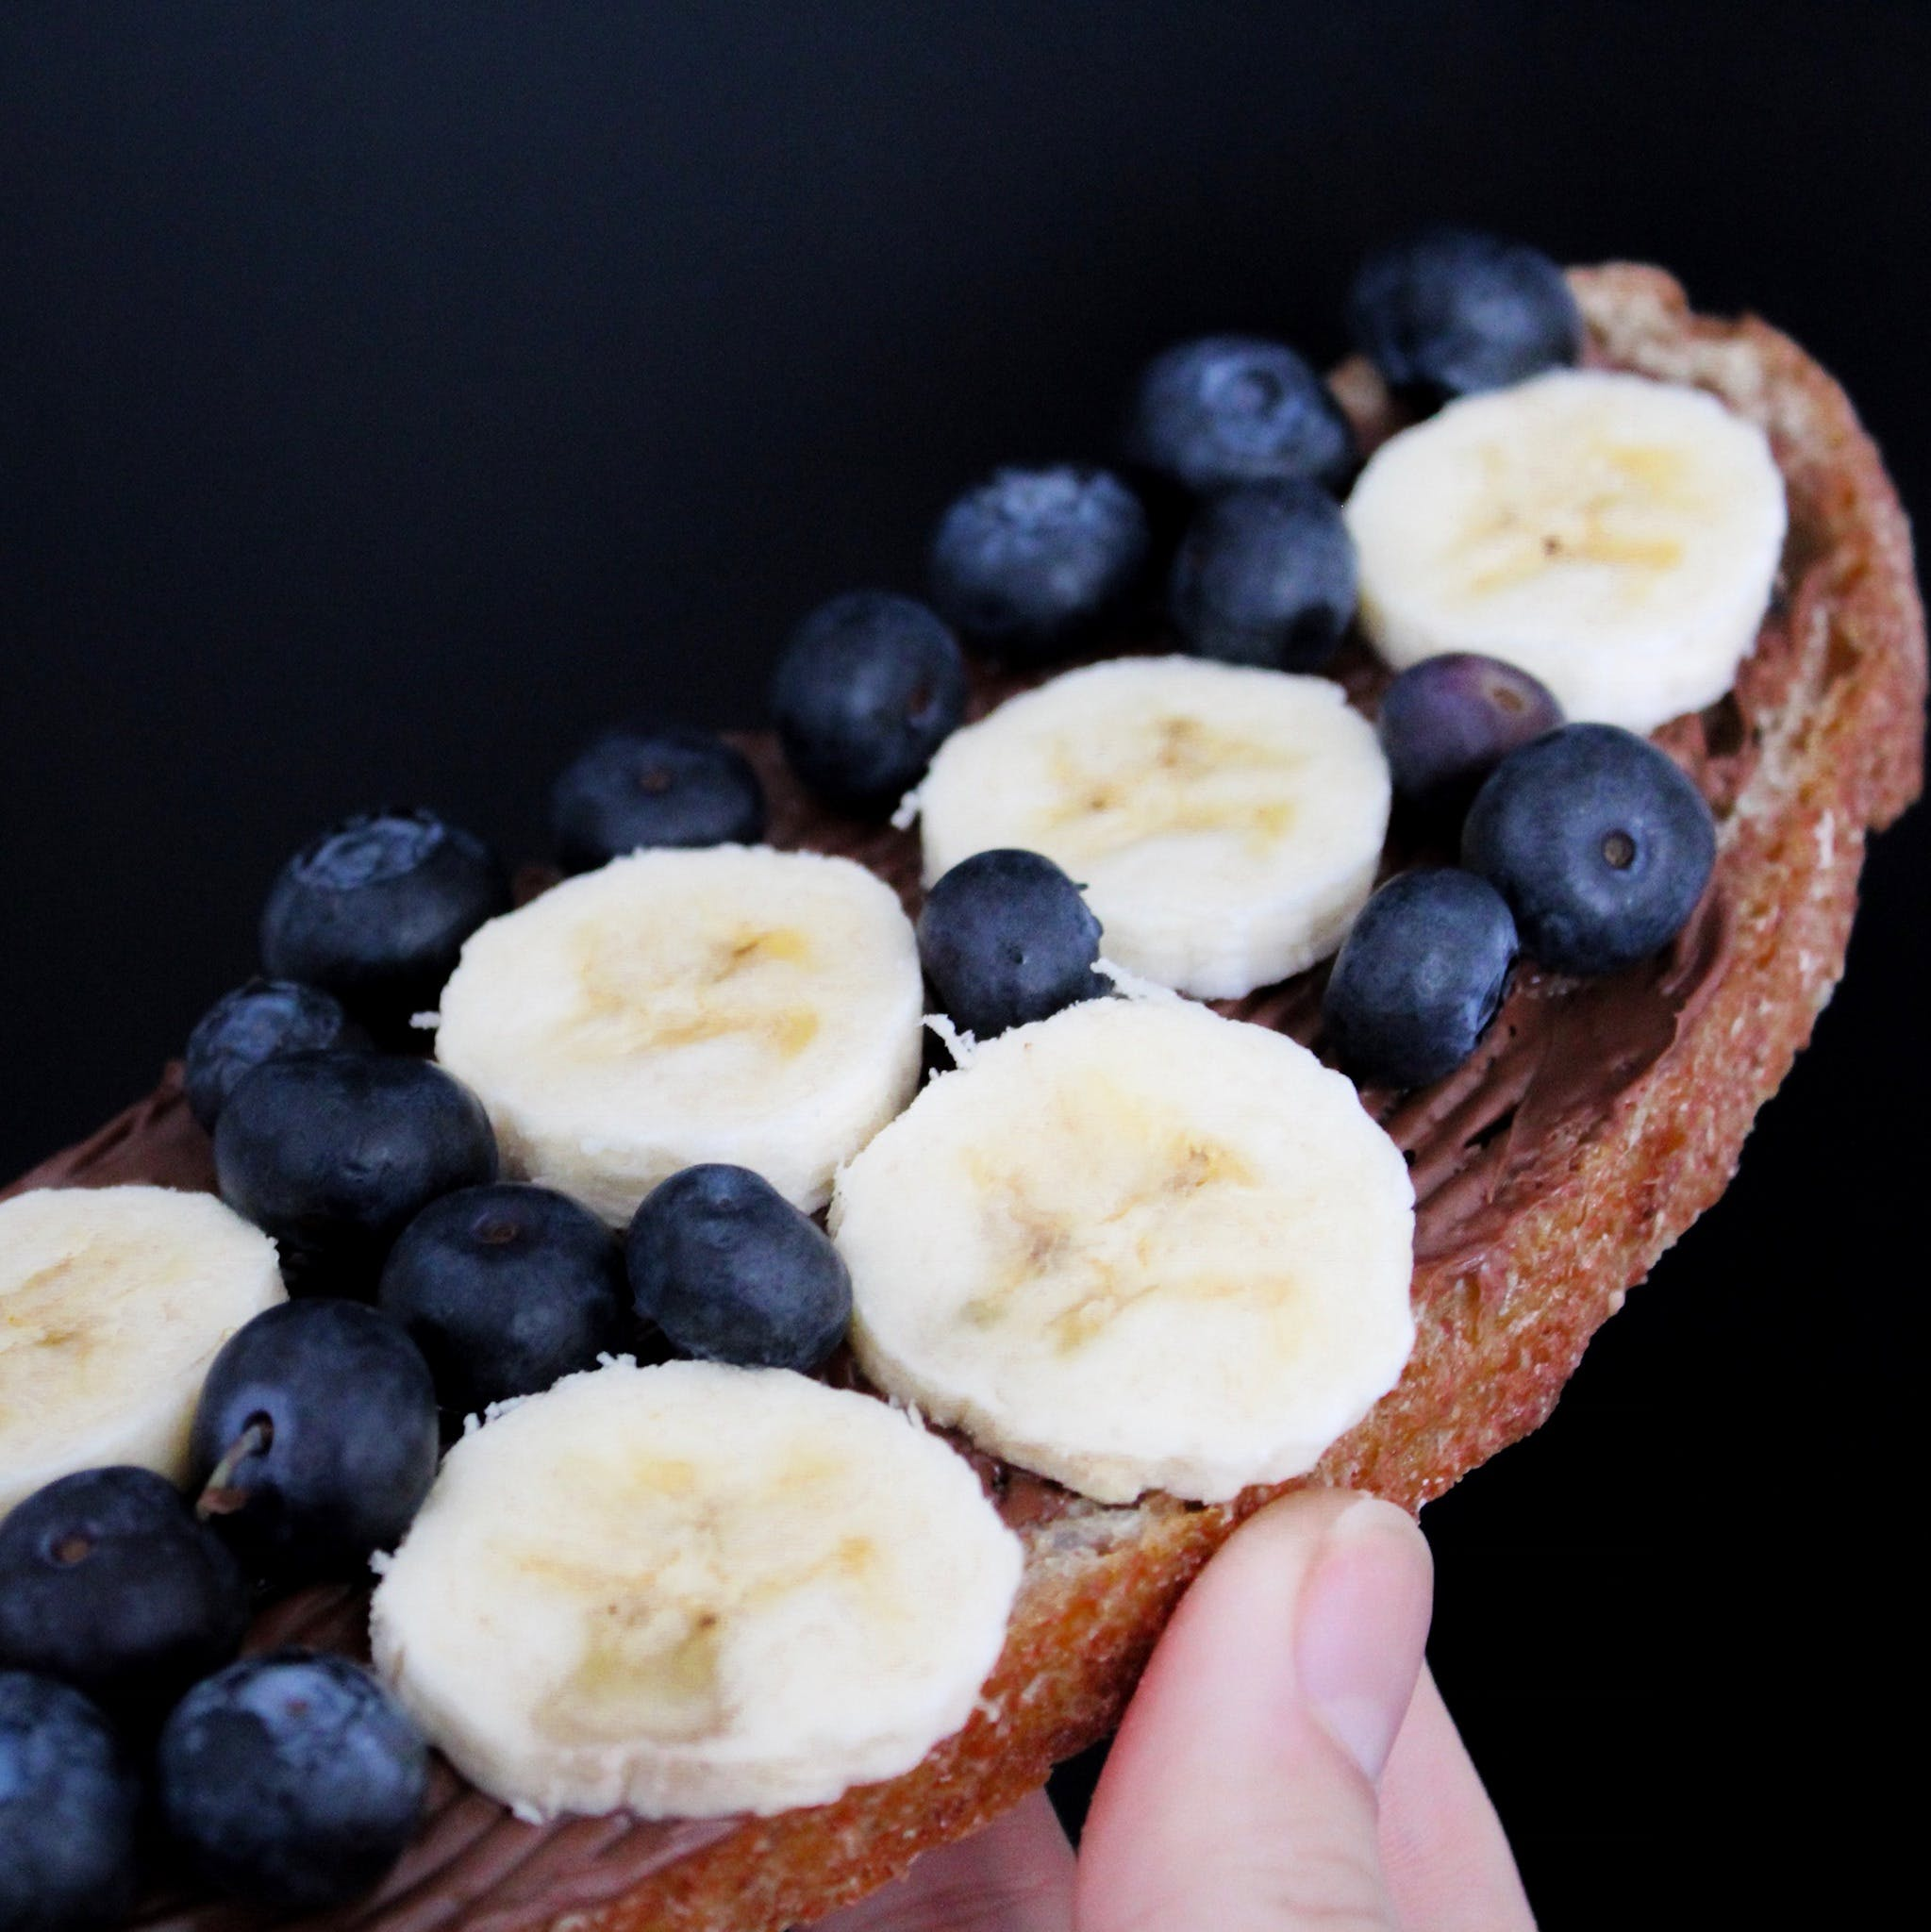 Sliced Banana With Blueberries